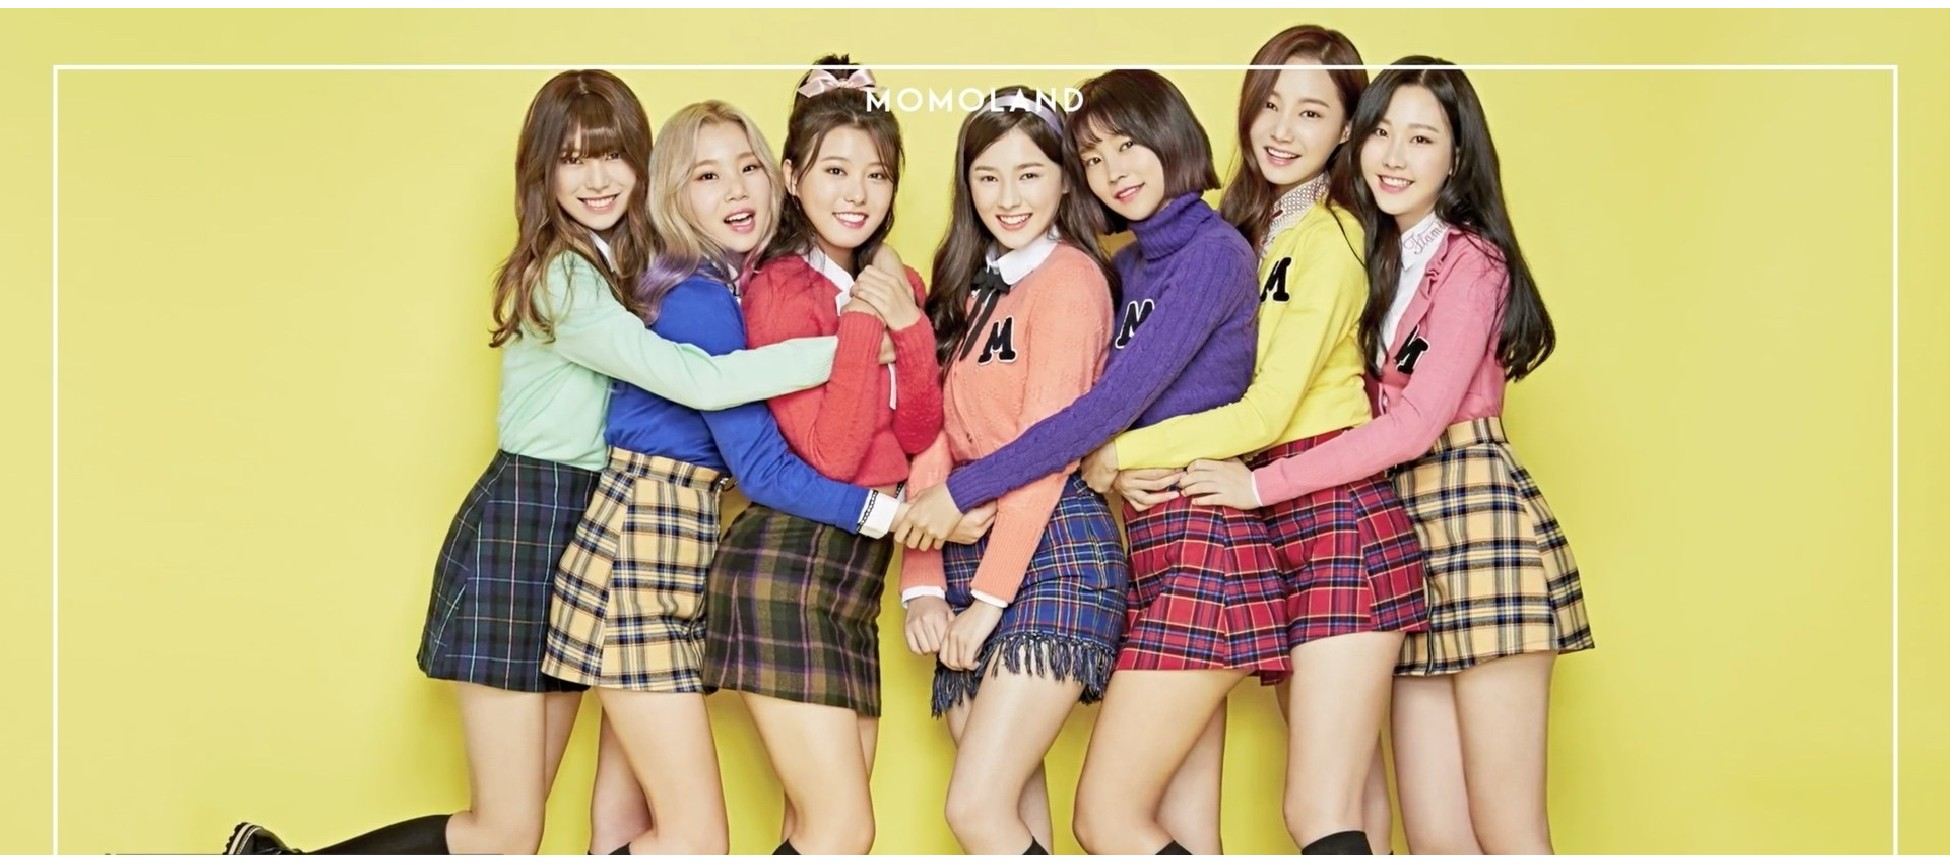 Momoland Poster 2